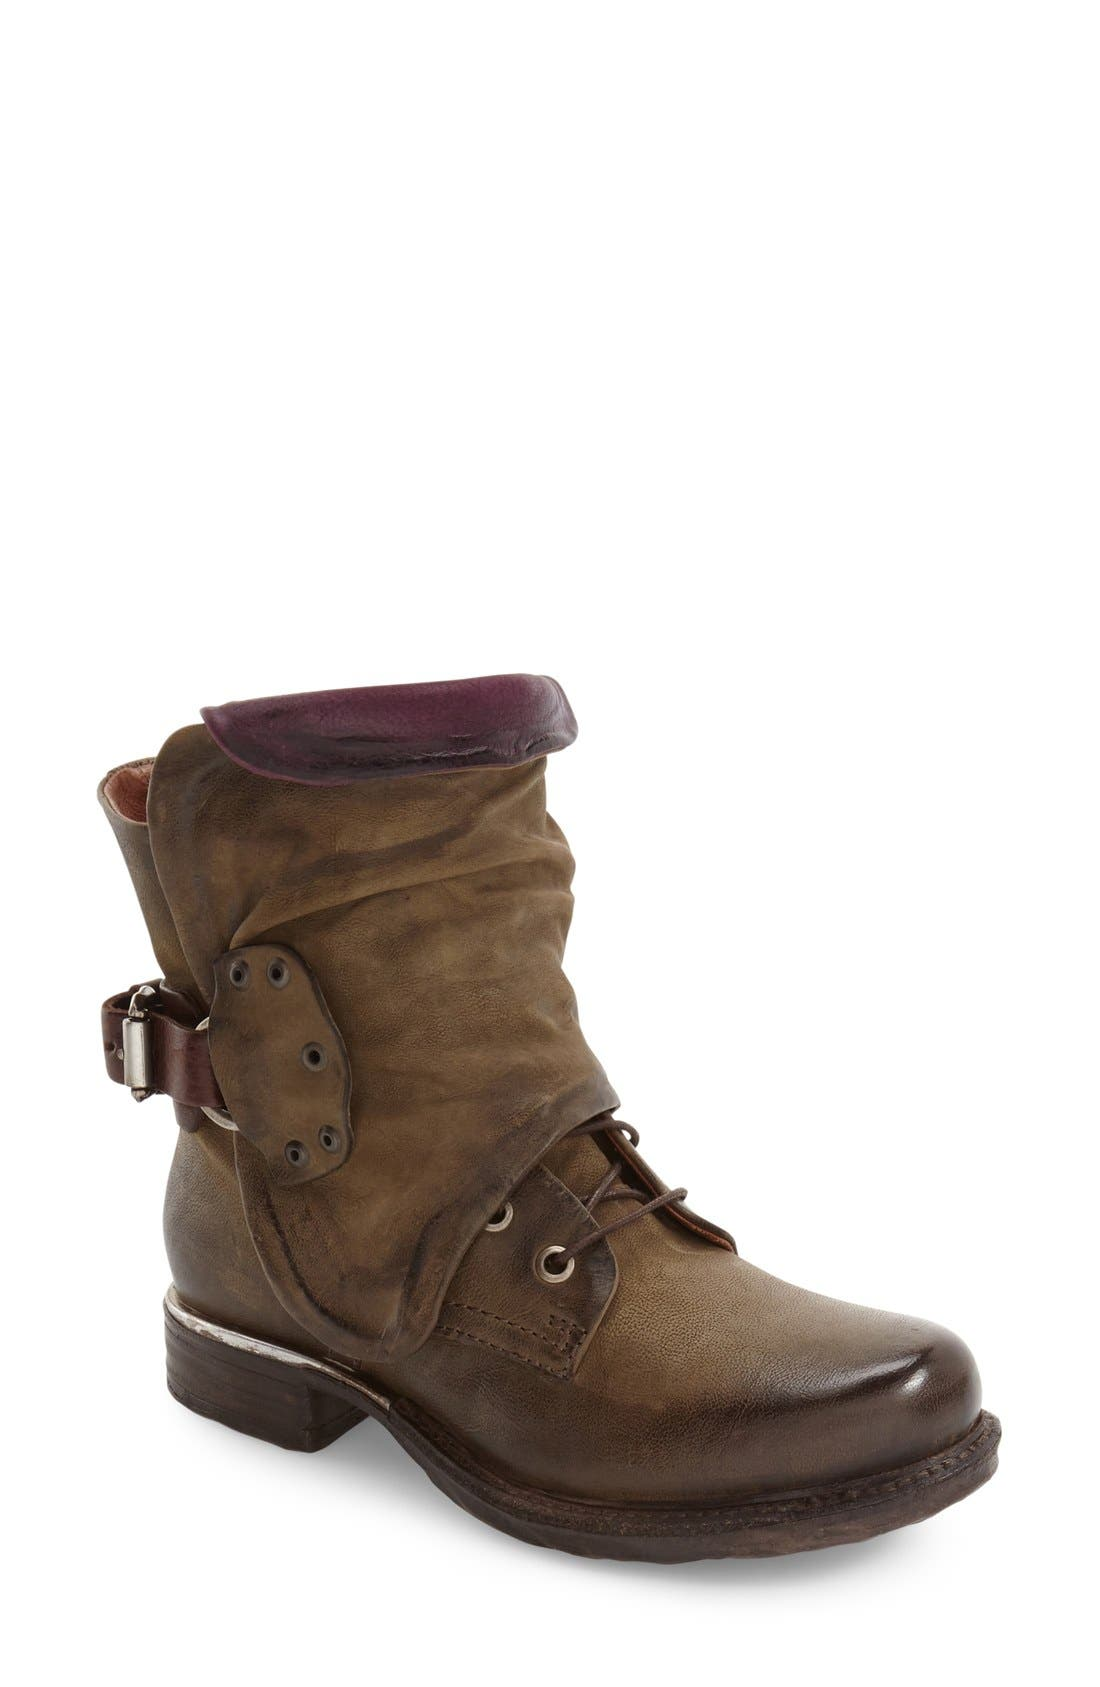 Main Image - A.S.98 Simon Slouchy Combat Boot (Women)